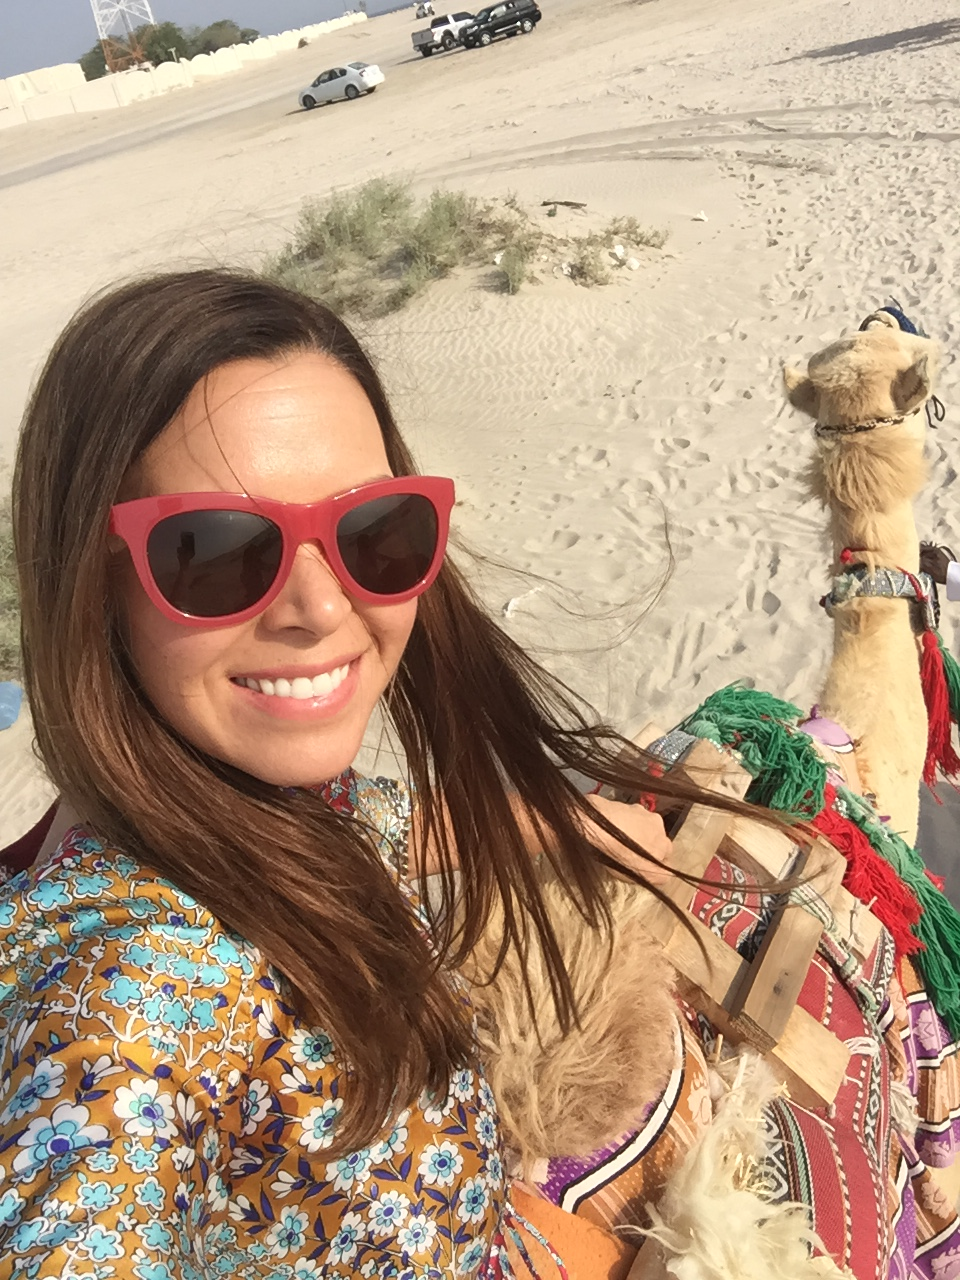 Monique Lhuillier travel diary: Magical day in the desert